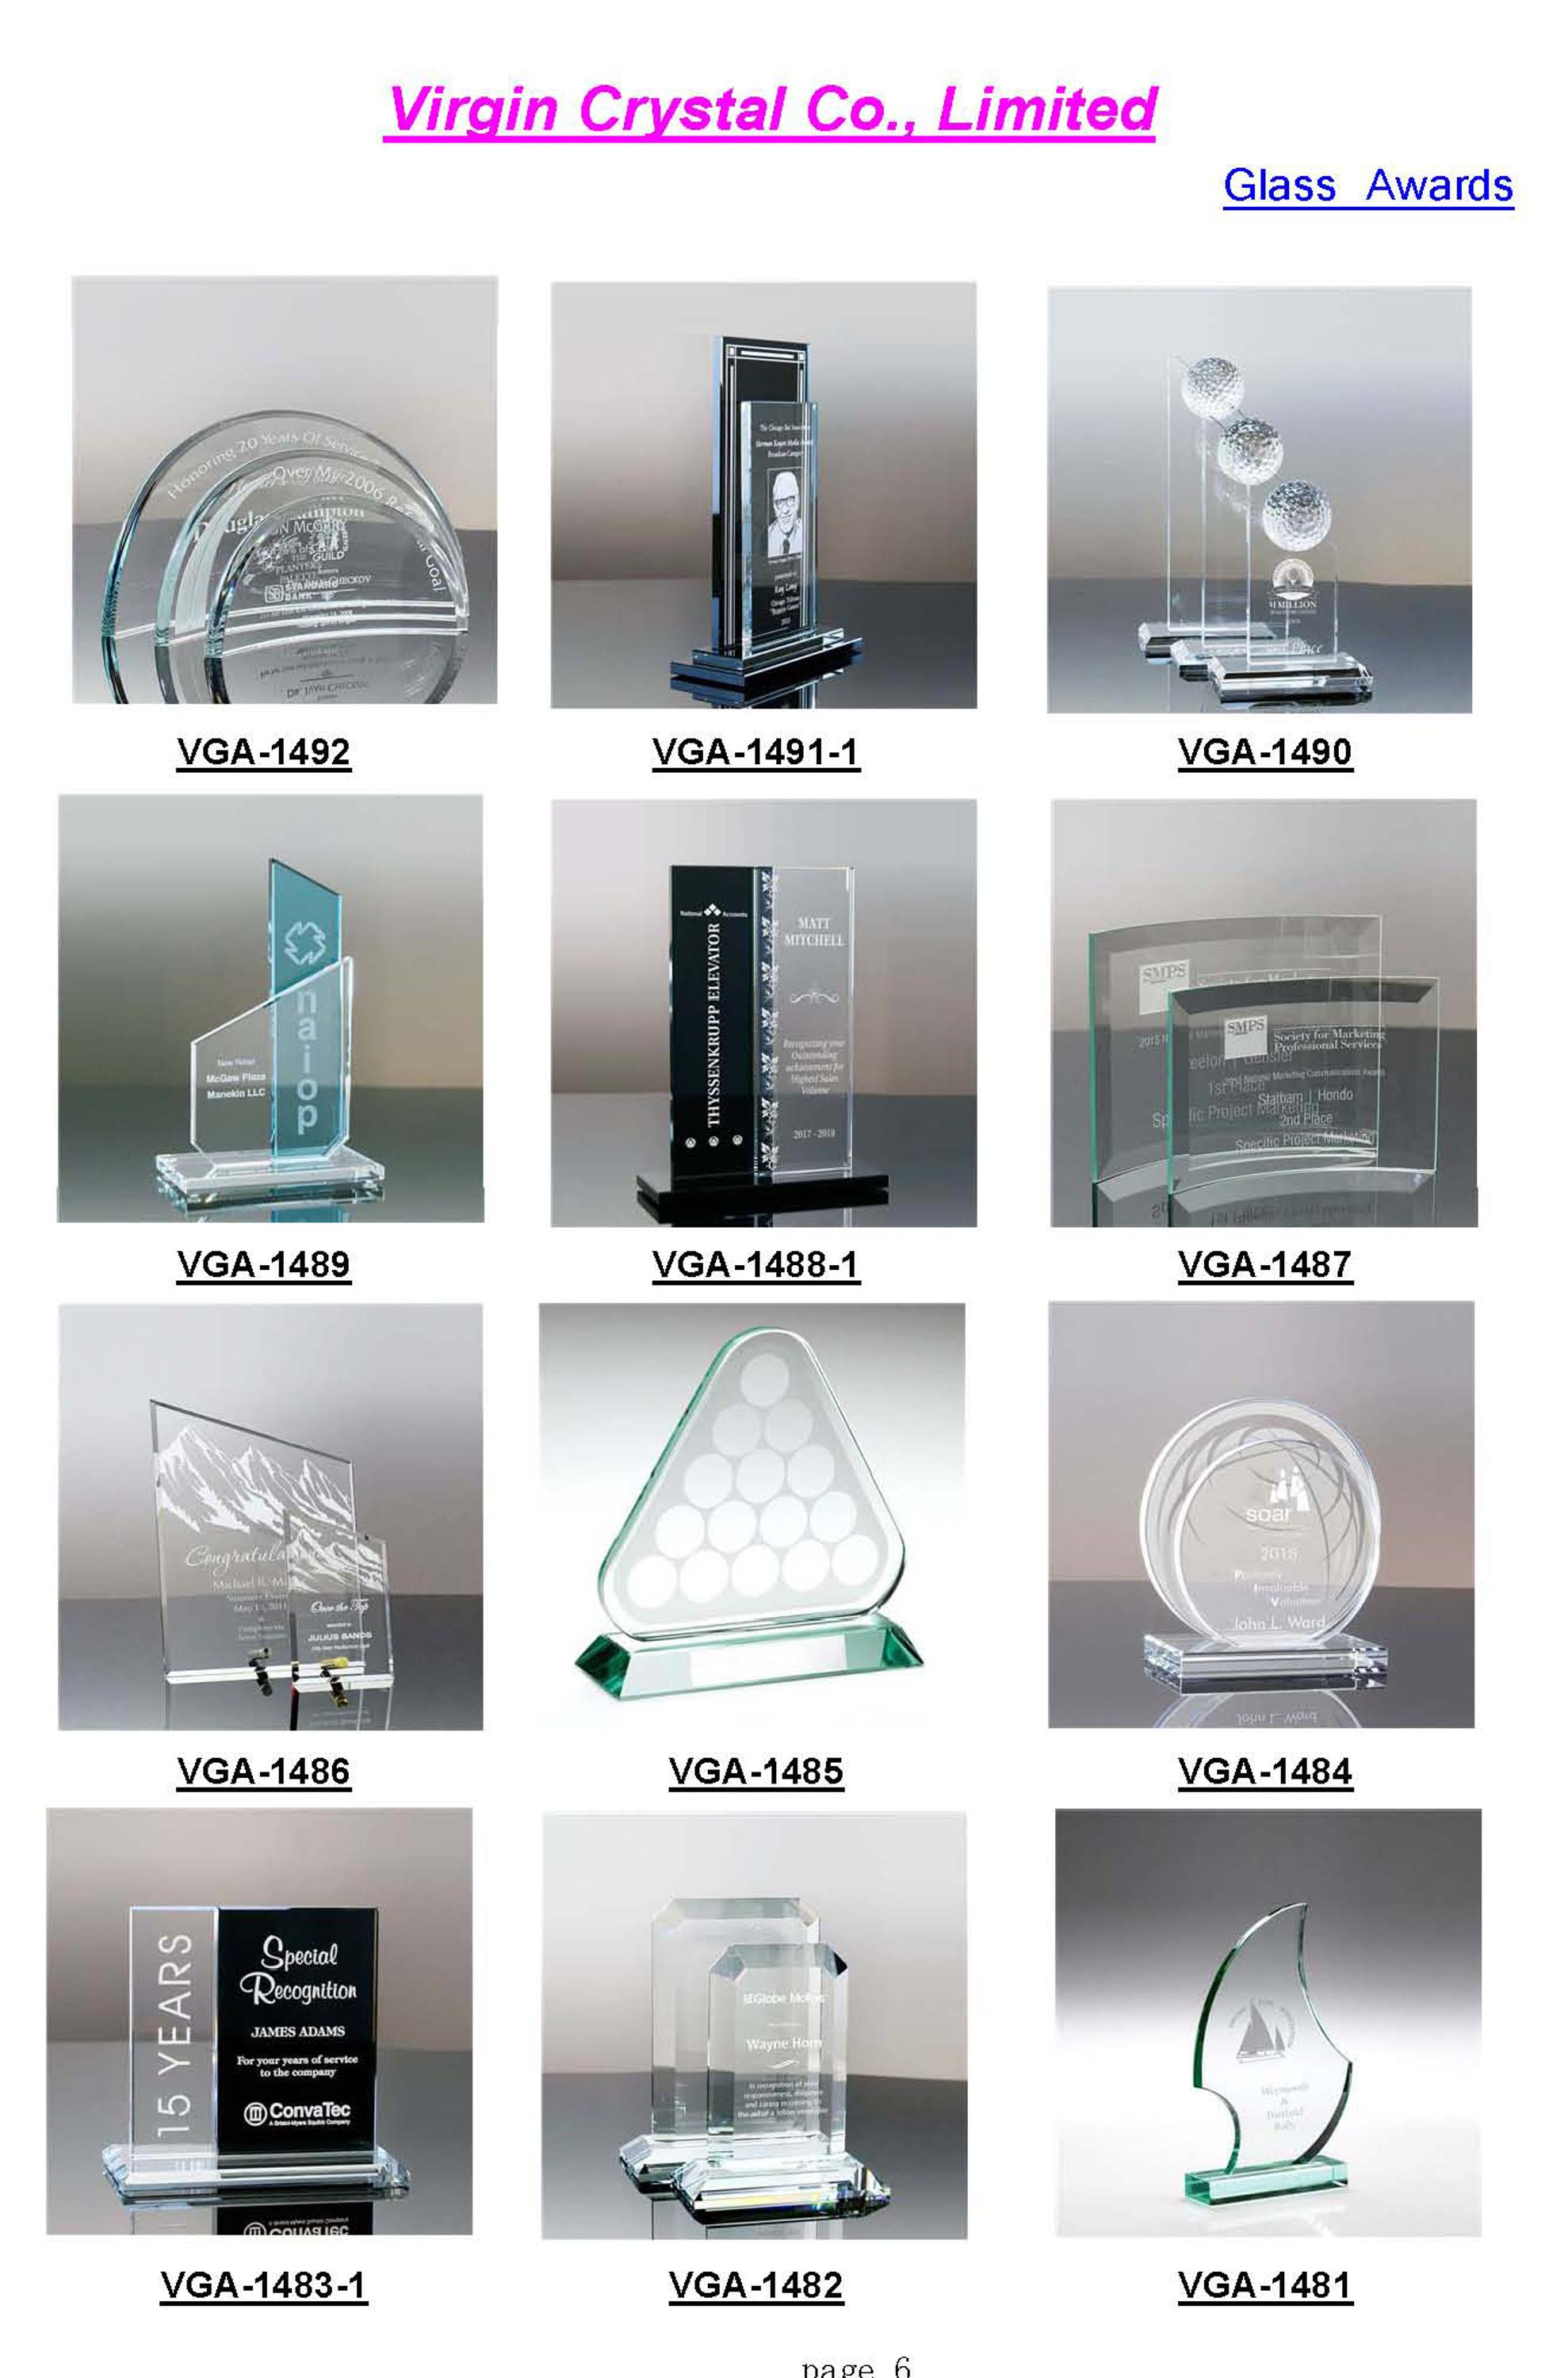 Factory Wholesale Nice Design Laser Engraved Crystal Awards with customized logo as Congratulation Awards